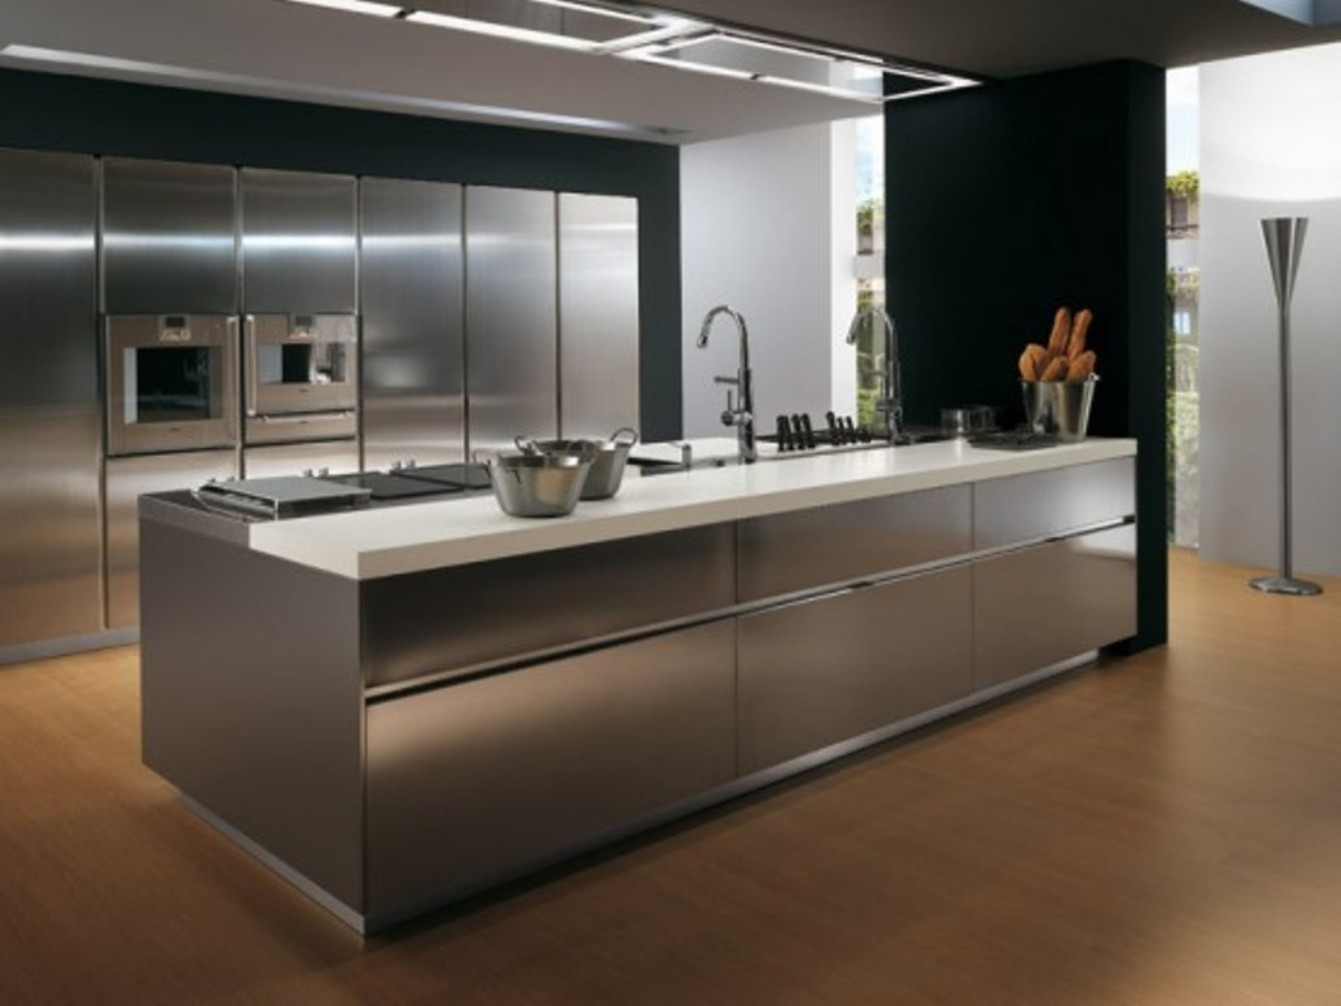 some important points to know before picking the right stainless